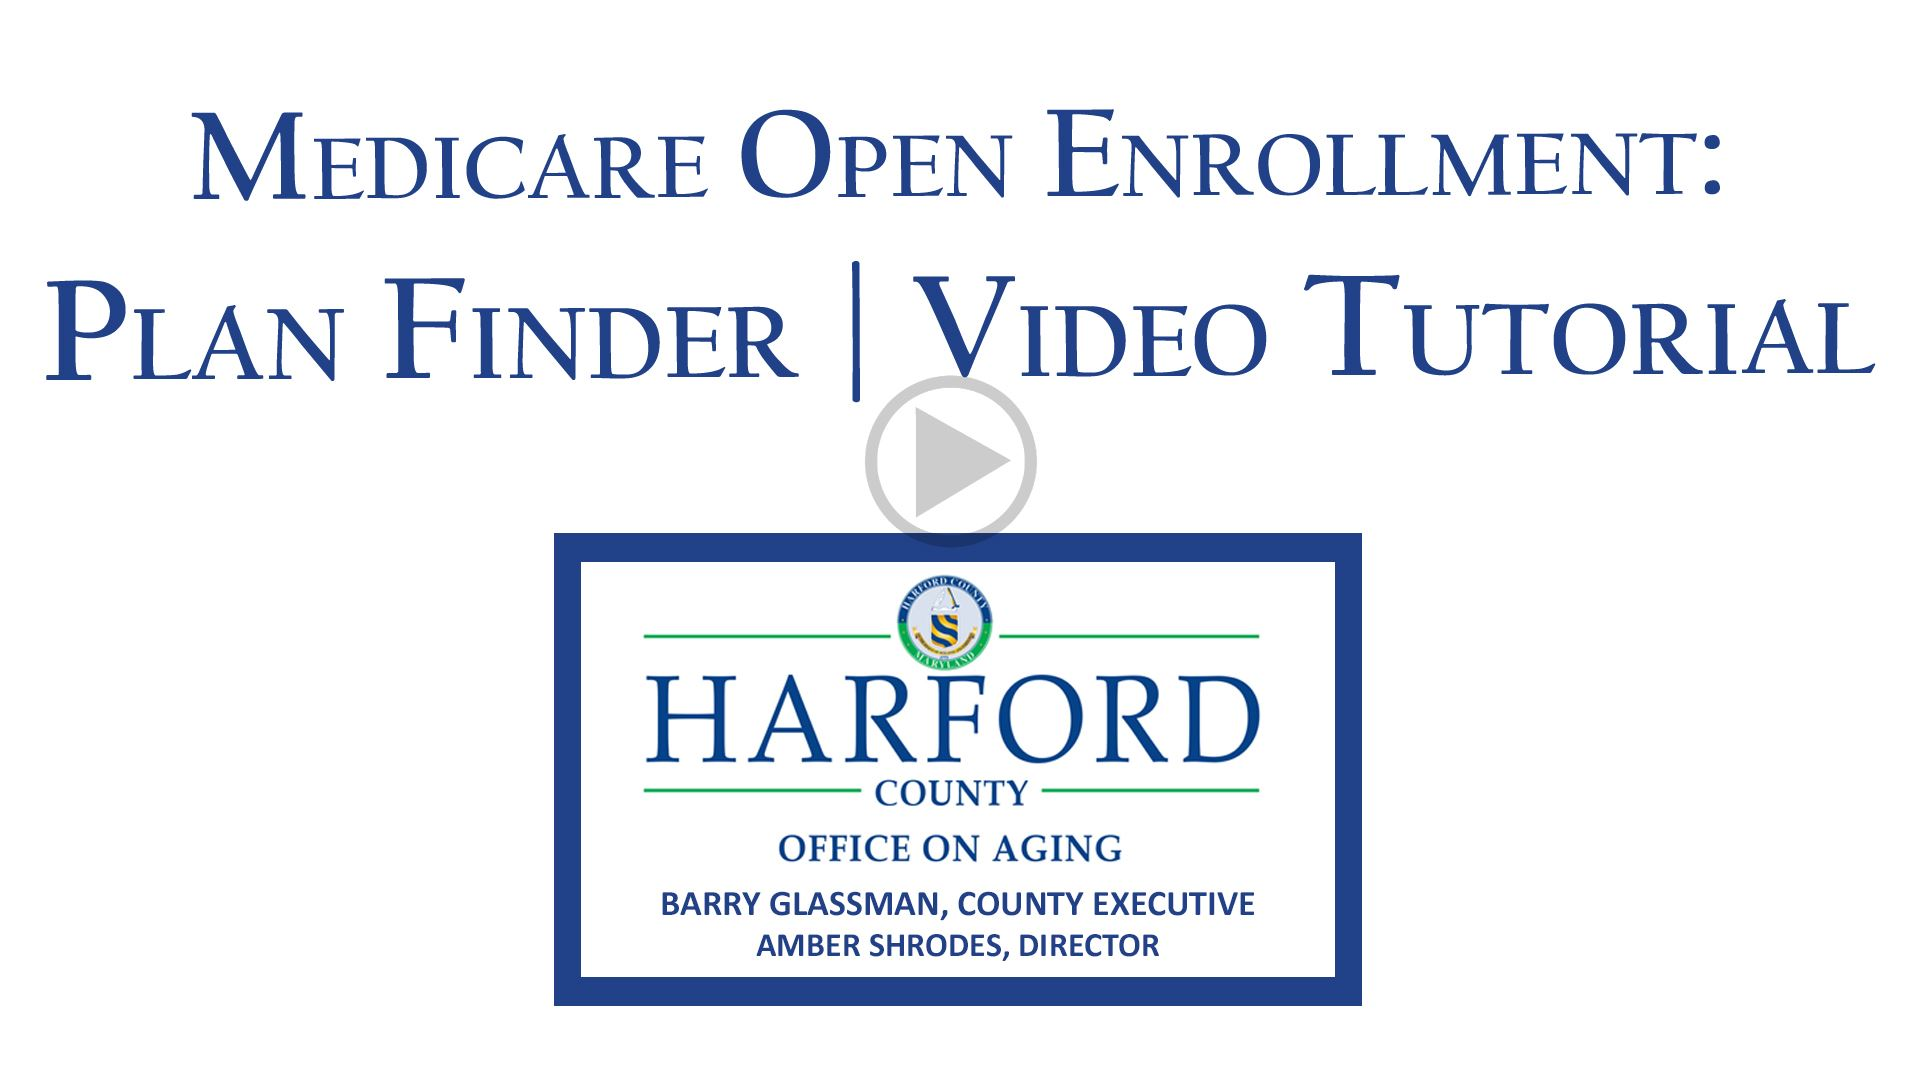 Medicare Open Enrollment New Plan Finder Tutorial Video Play button